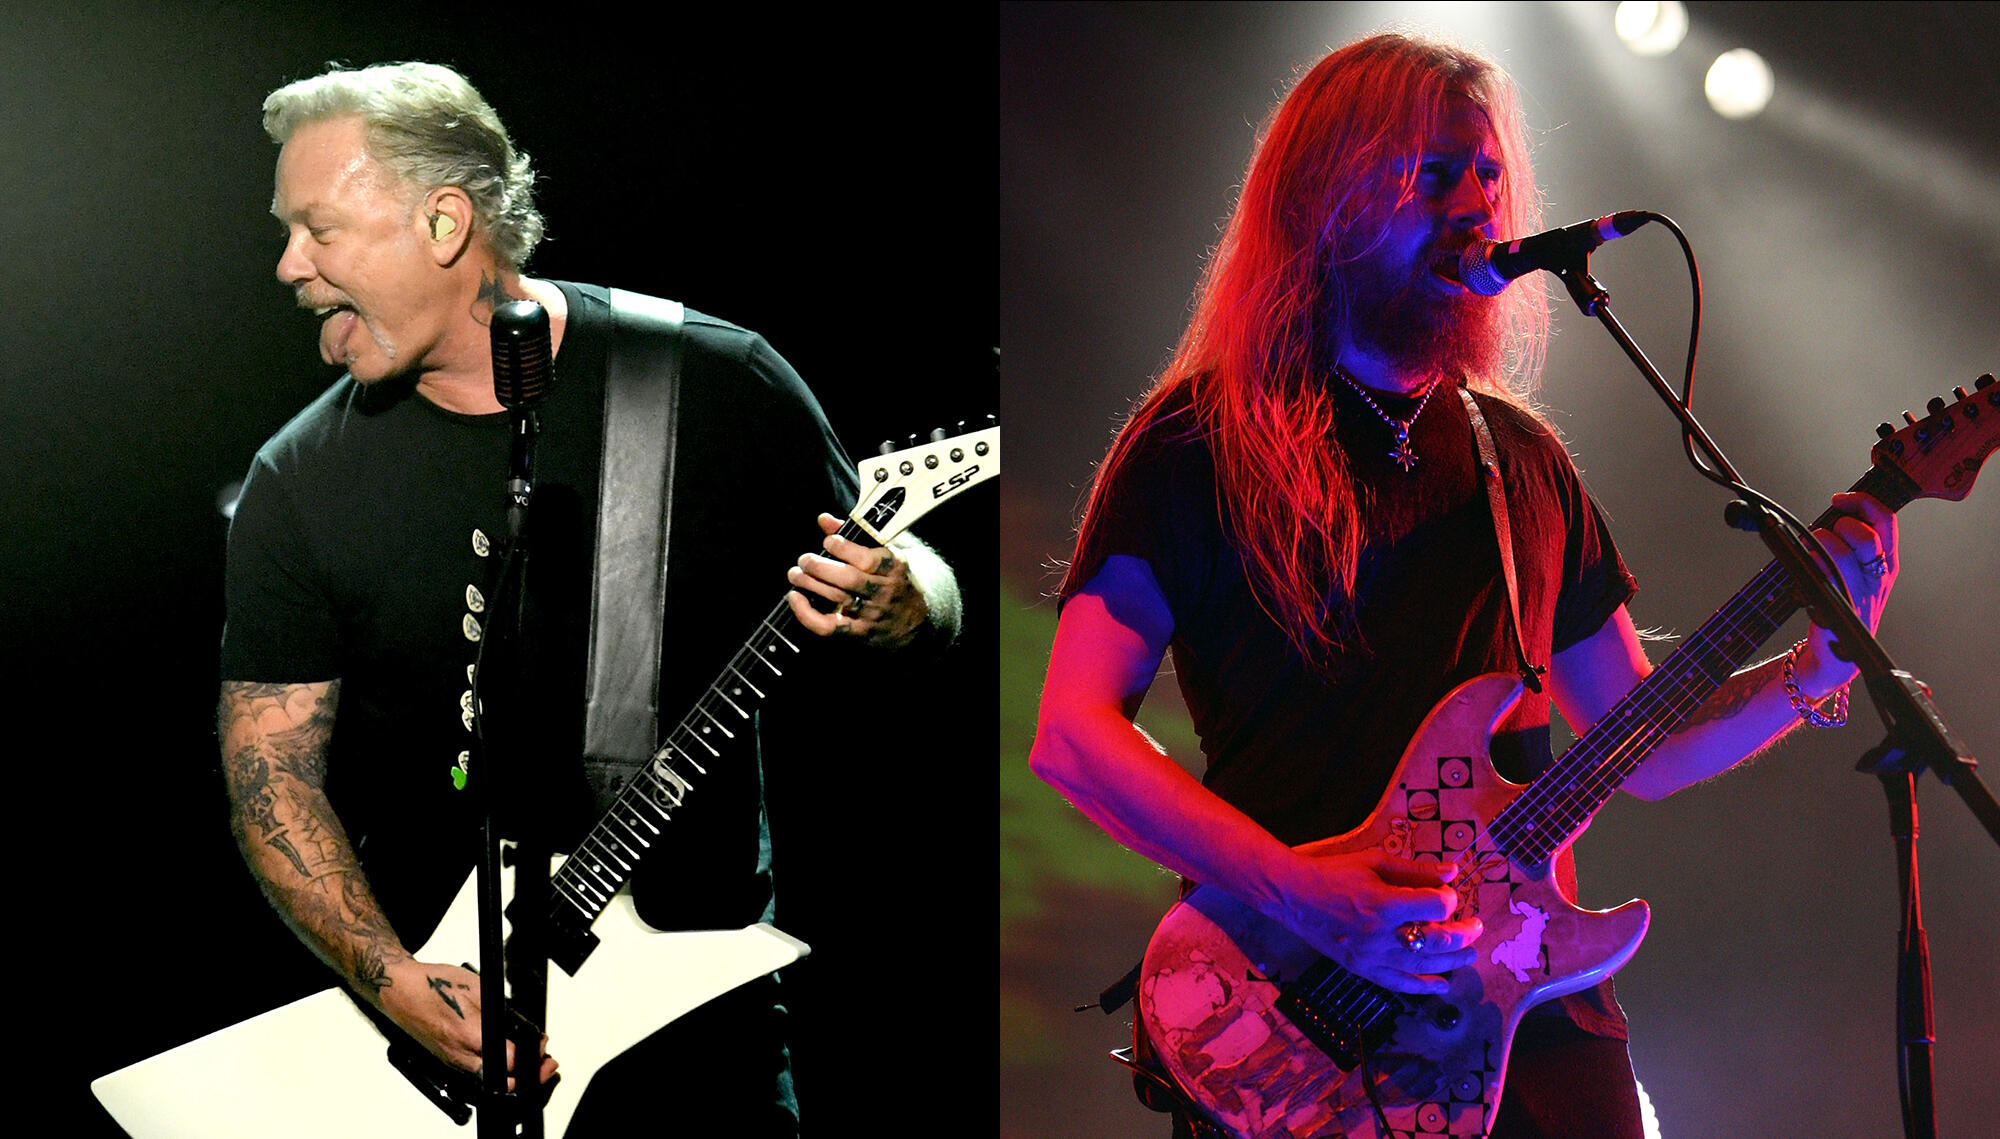 Jerry Cantrell Gushes Over How 'Inspiring' Metallica's James Hetfield Is